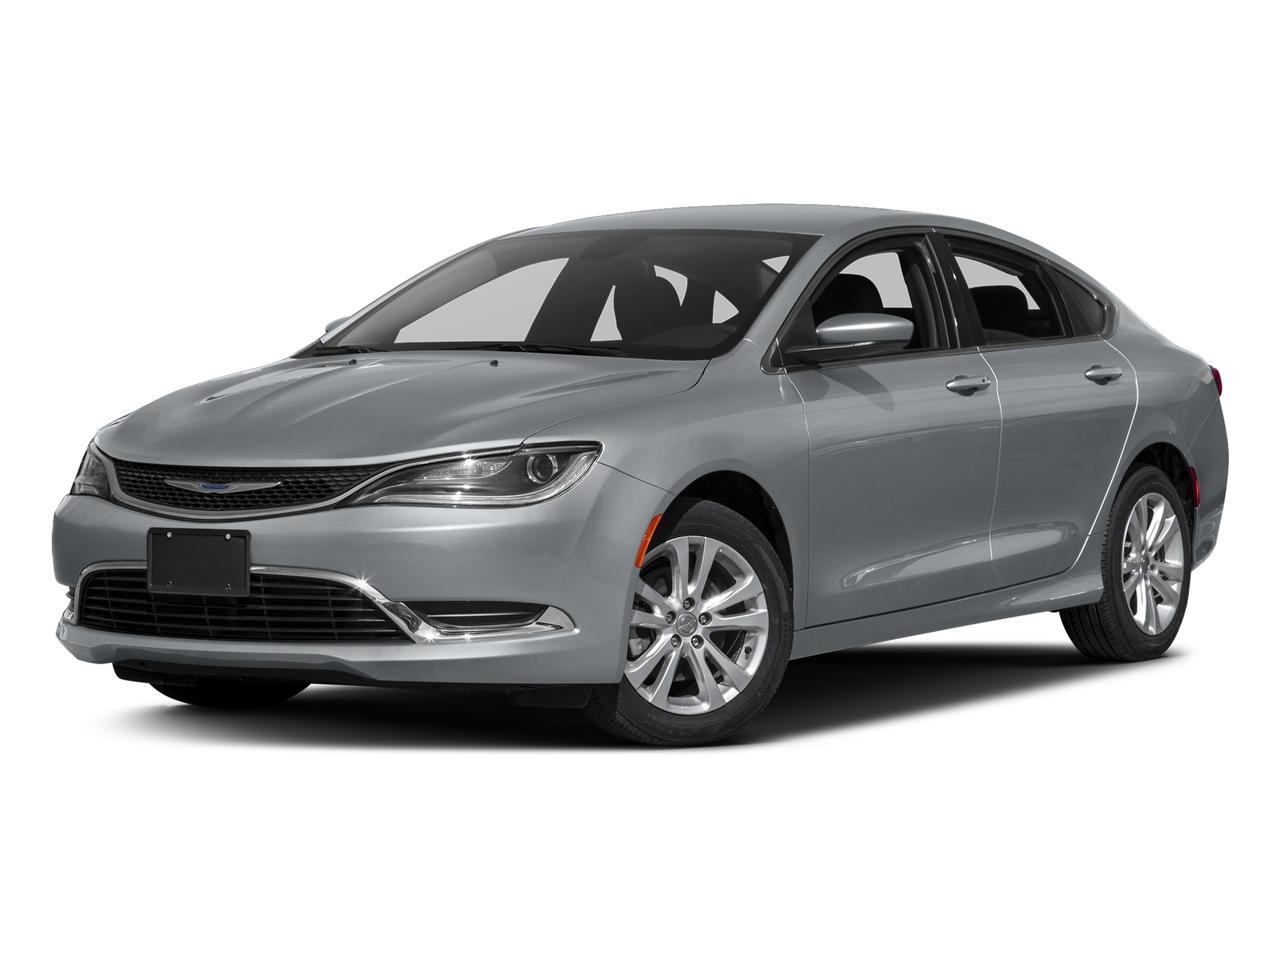 2016 Chrysler 200 Vehicle Photo in Moon Township, PA 15108